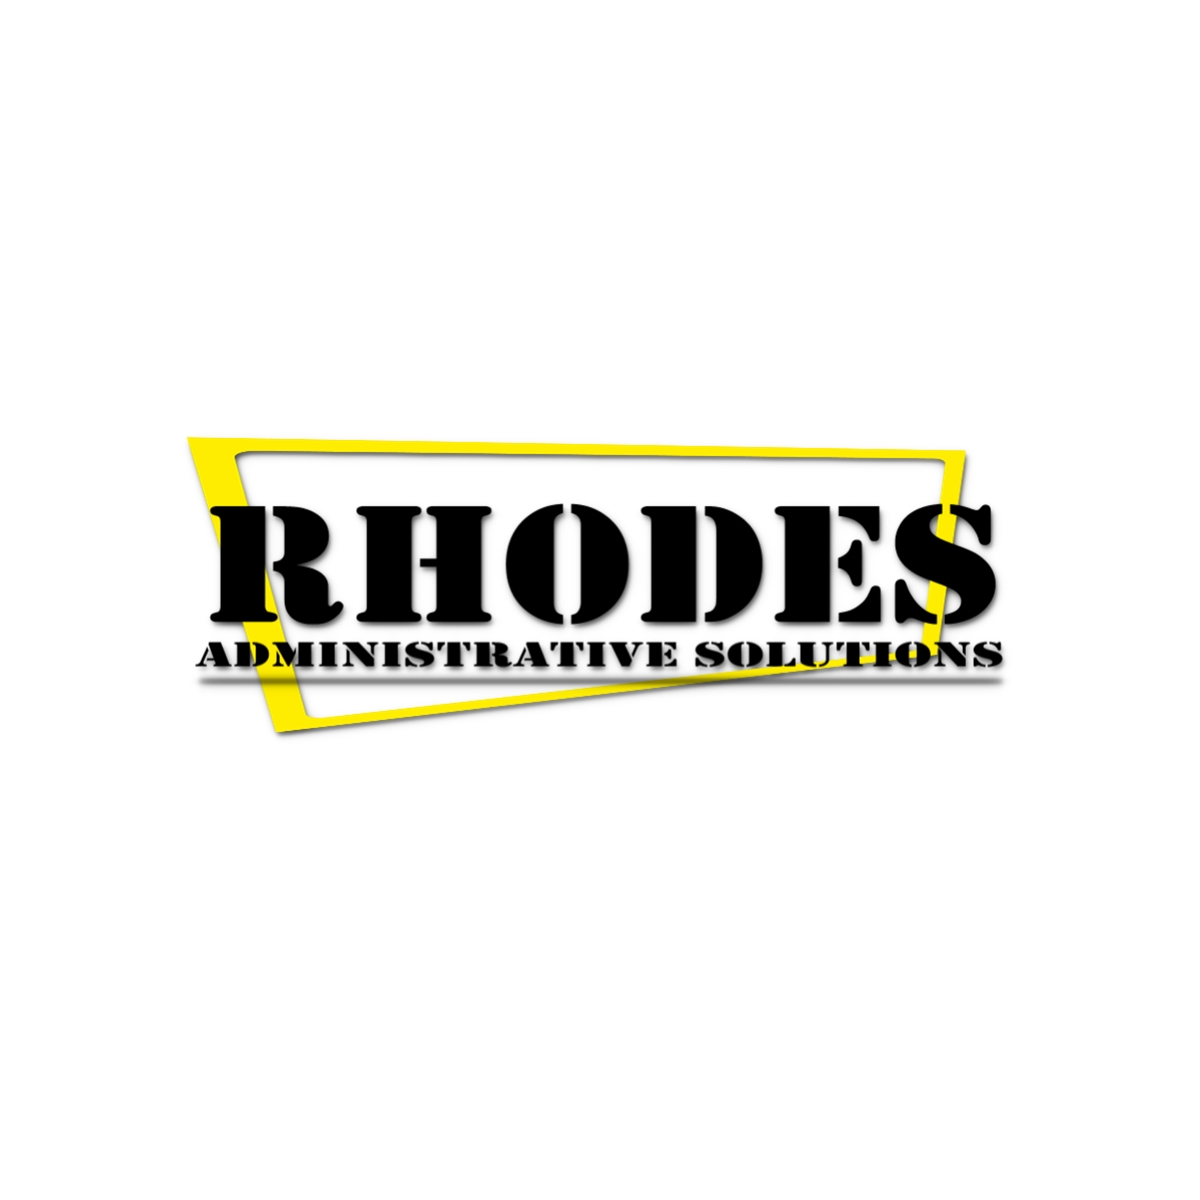 Logo Design by Joseph calunsag Cagaanan - Entry No. 56 in the Logo Design Contest Rhodes Administrative Solutions.